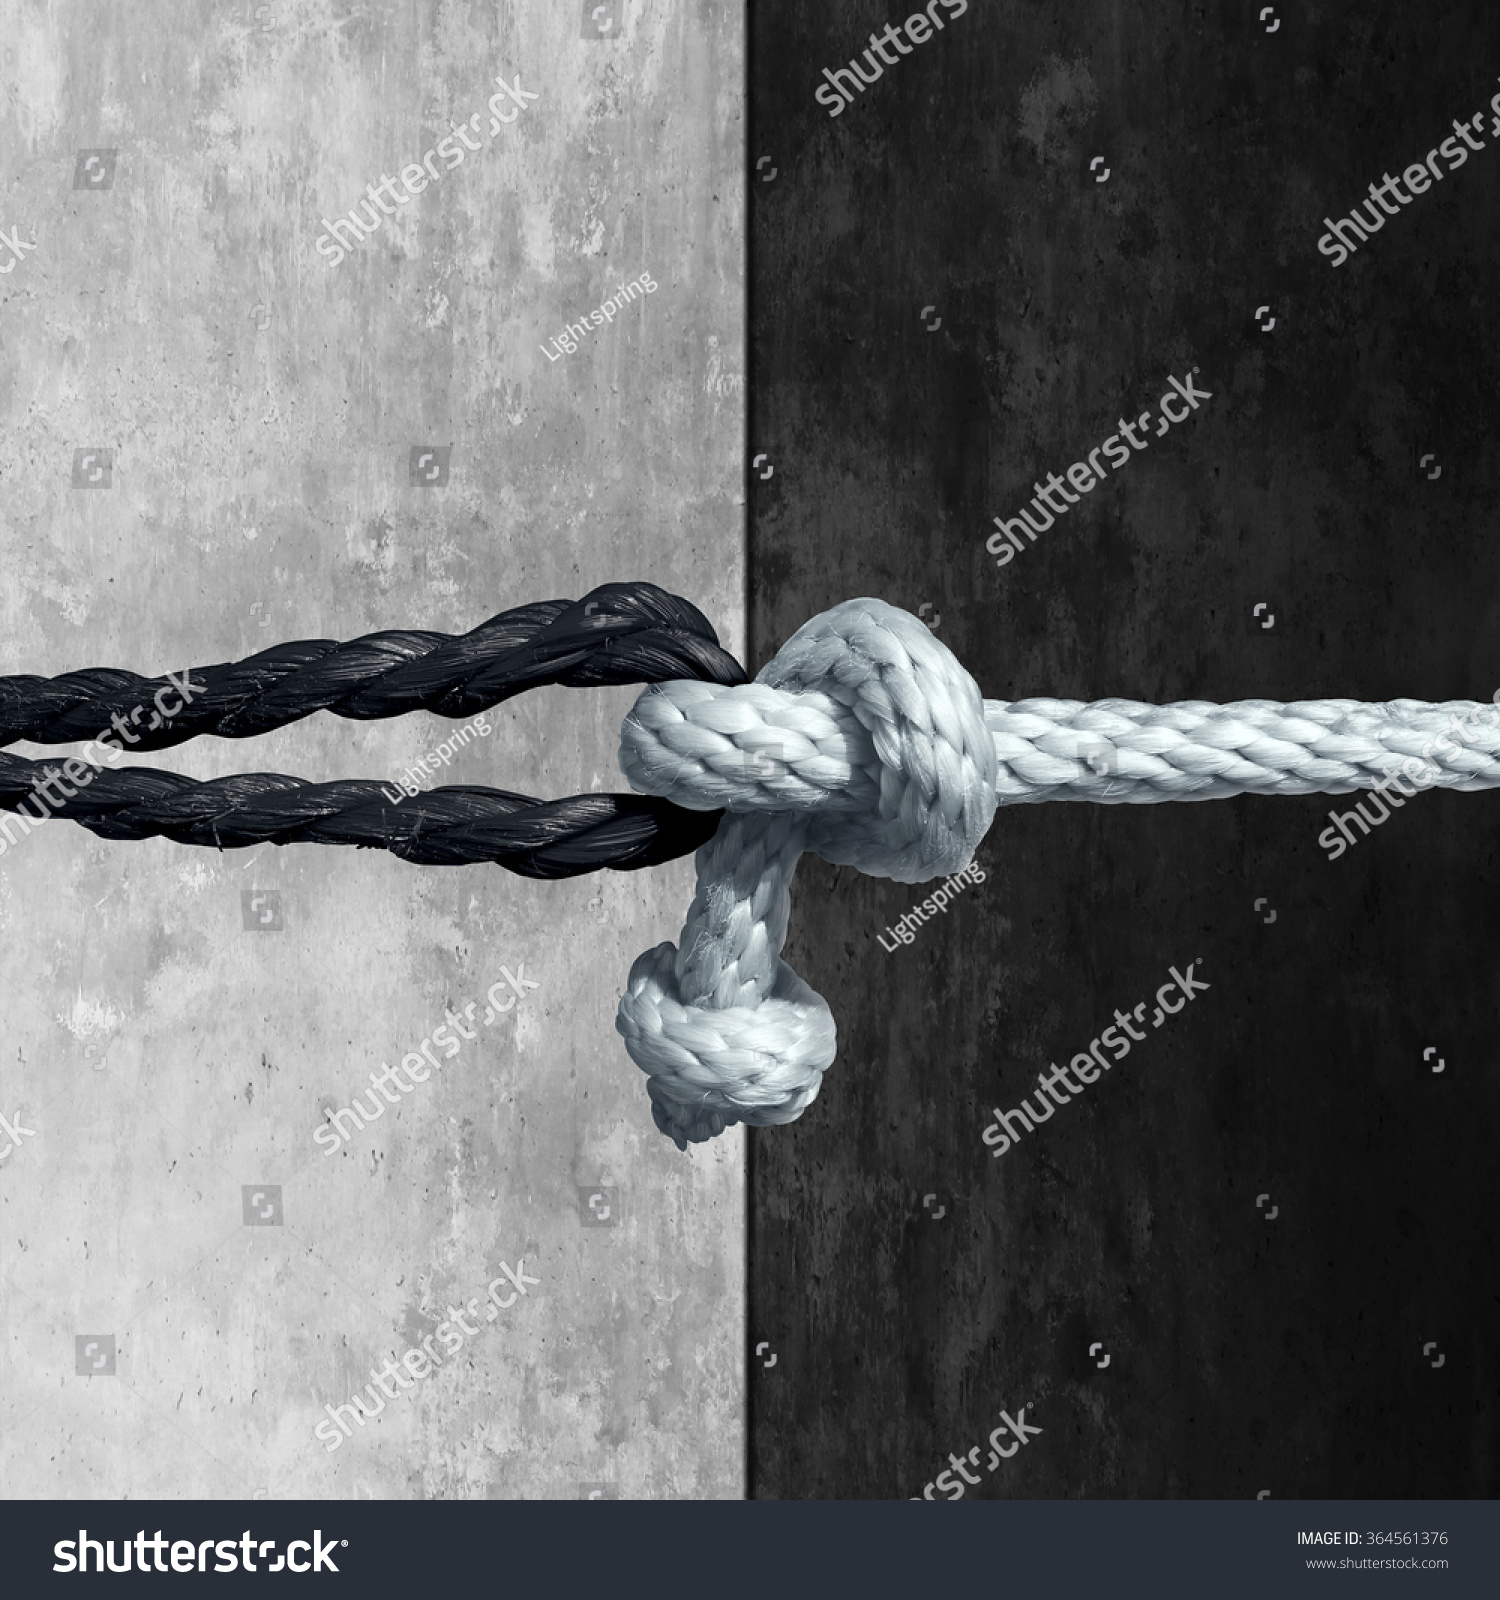 Racial unity concept symbol against racism stock photo 364561376 racial unity concept as a symbol against racism in society as a white and black rope biocorpaavc Images